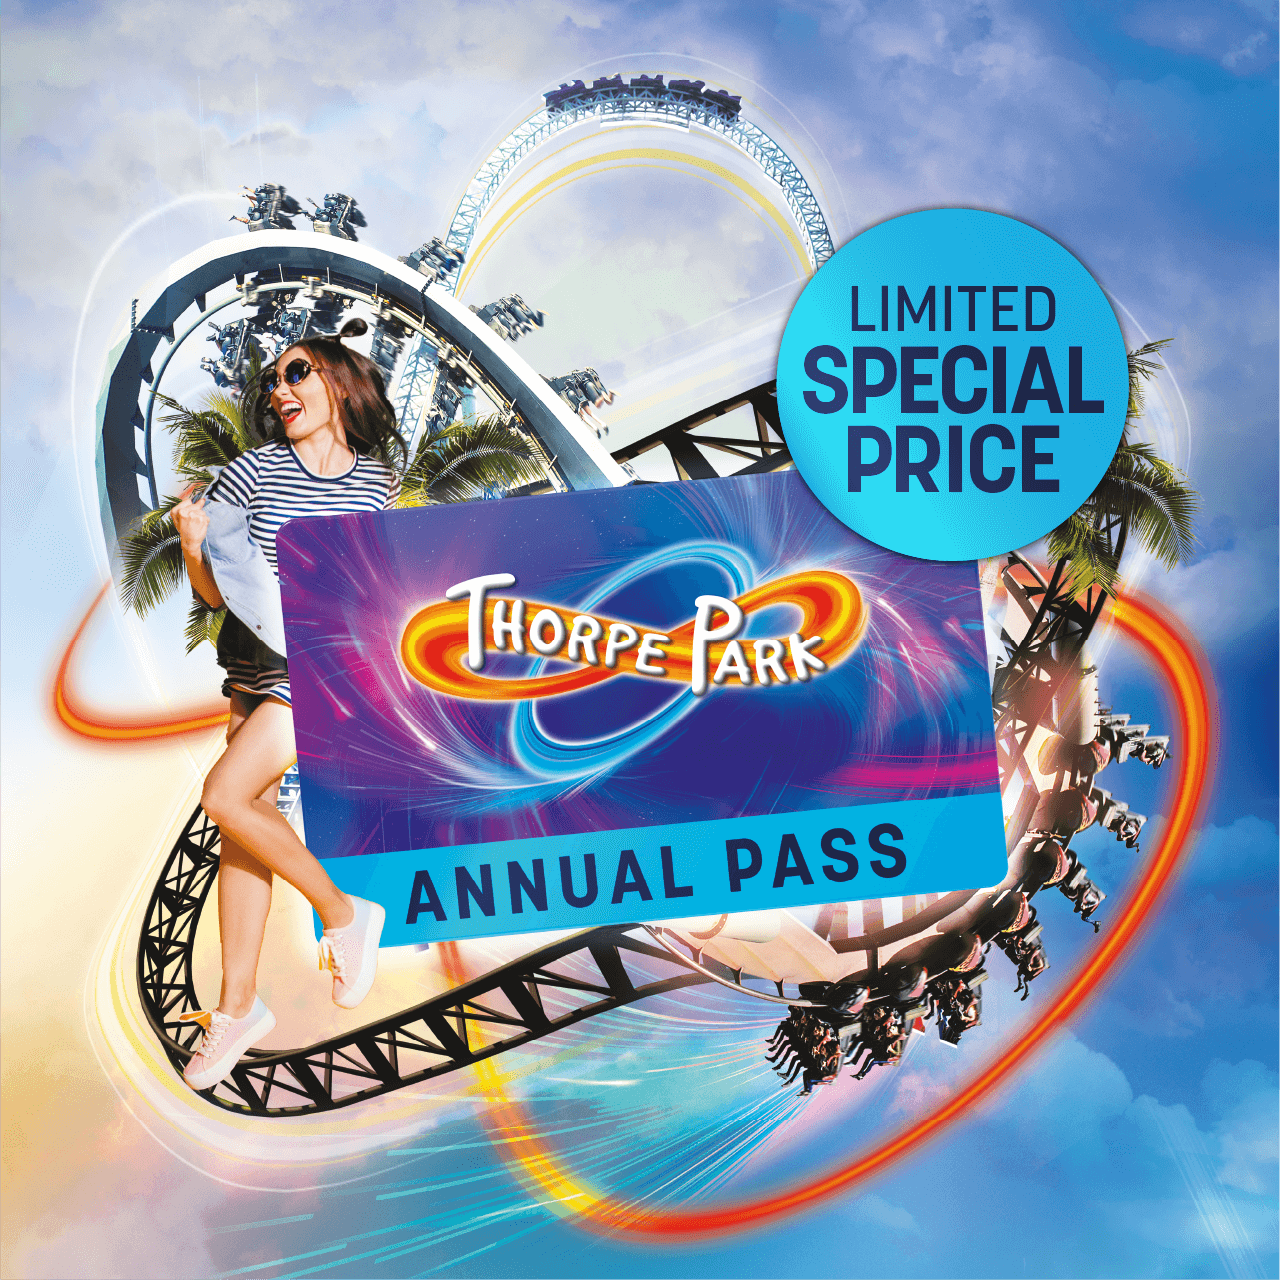 Theme Park Annual Pass Offer